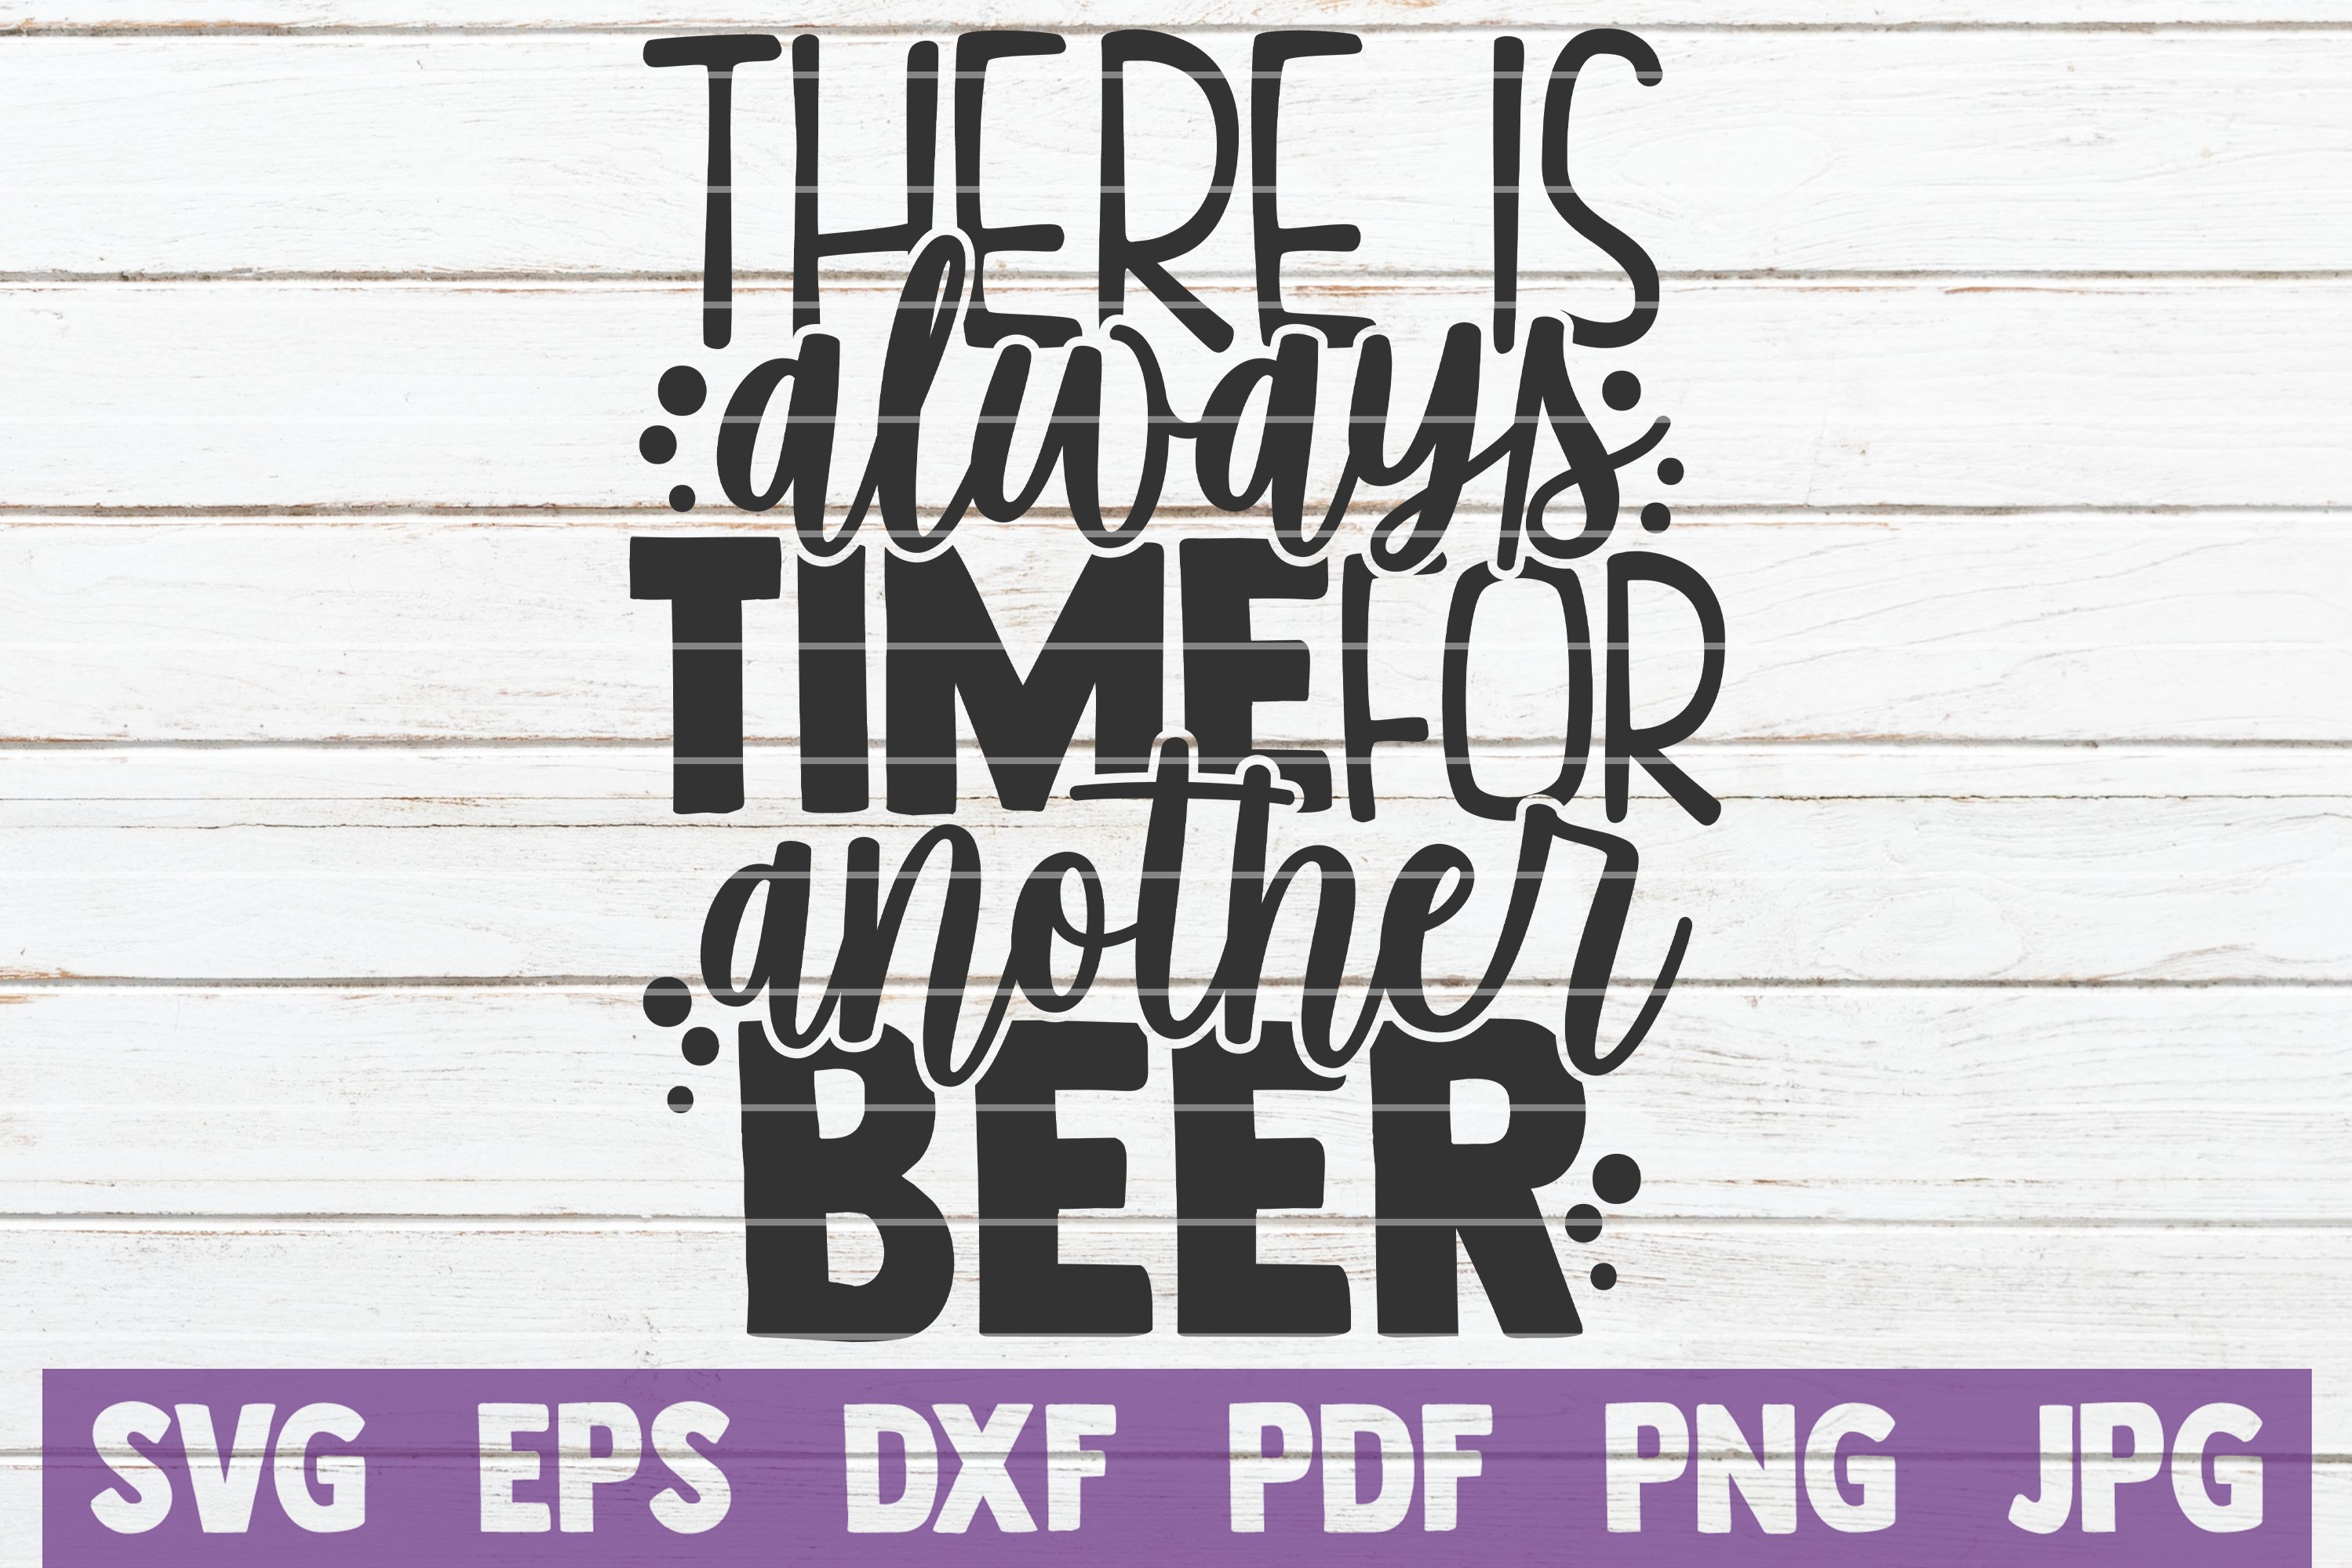 Funny Beer Shirt SVG There Is Always Time For Another Beer SVG Cut File printable vector clip art Instant download Commercial use